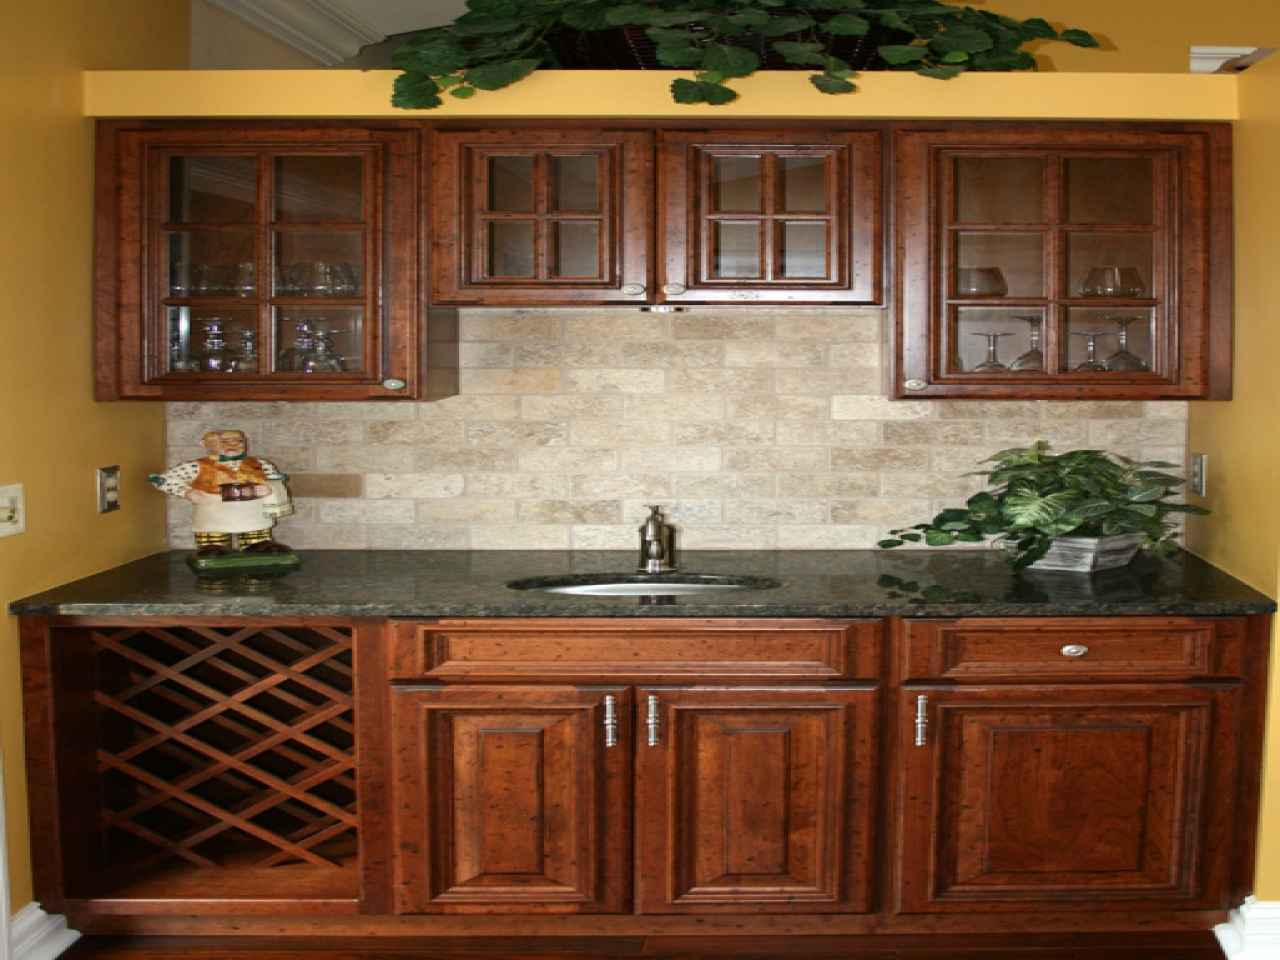 kitchen ideas oak cabinets photo - 9